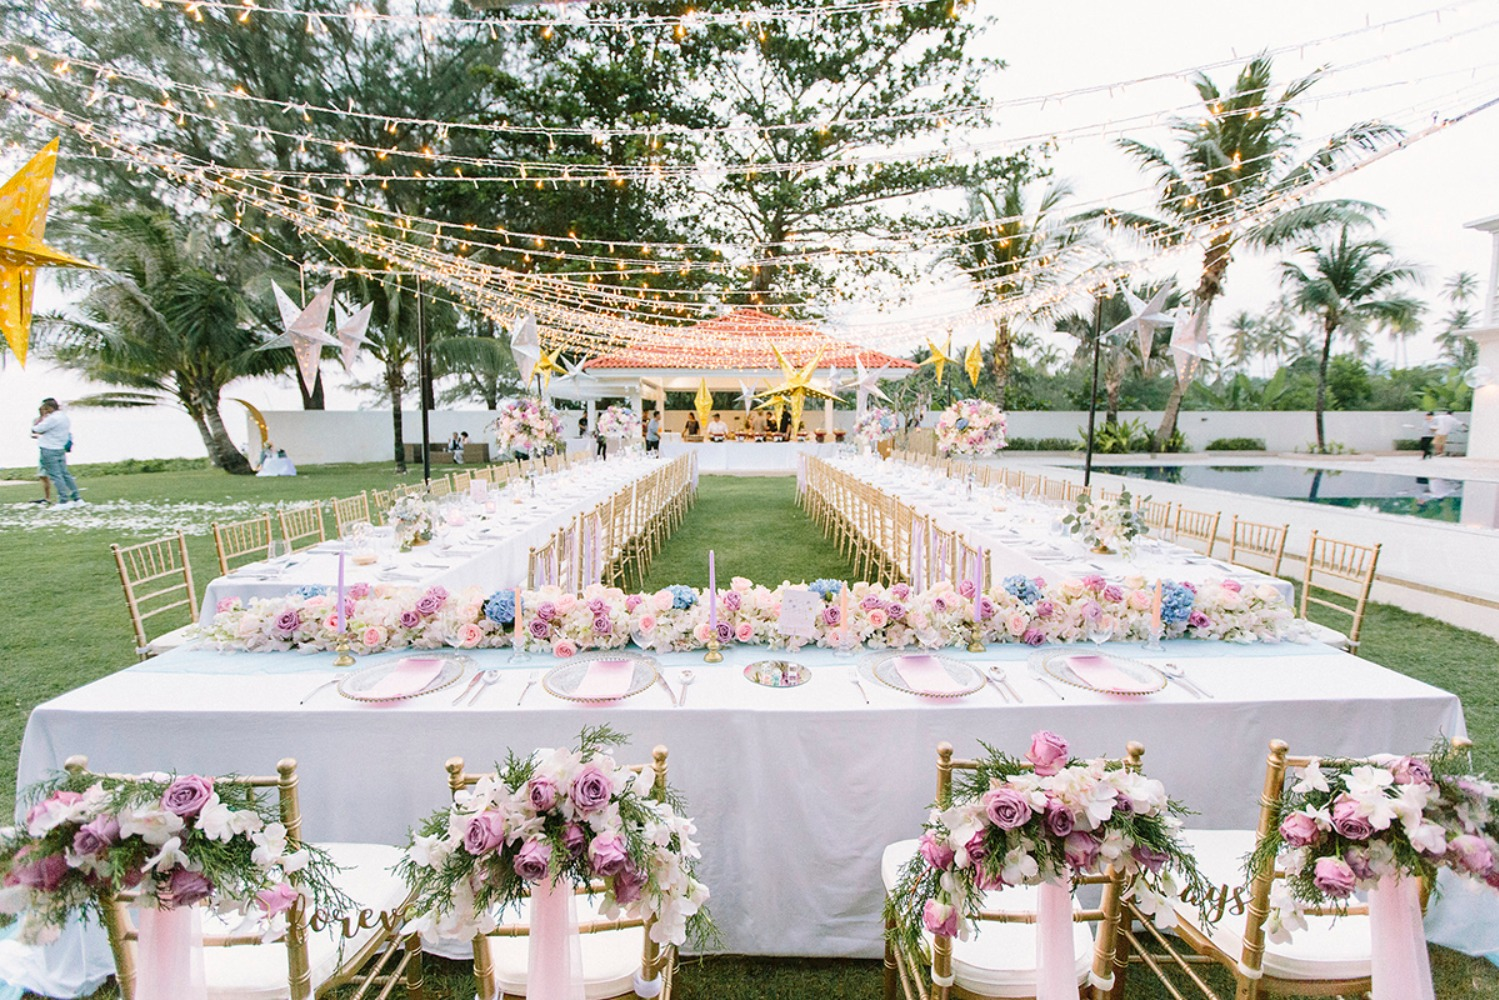 Star studded outdoor reception in Phuket